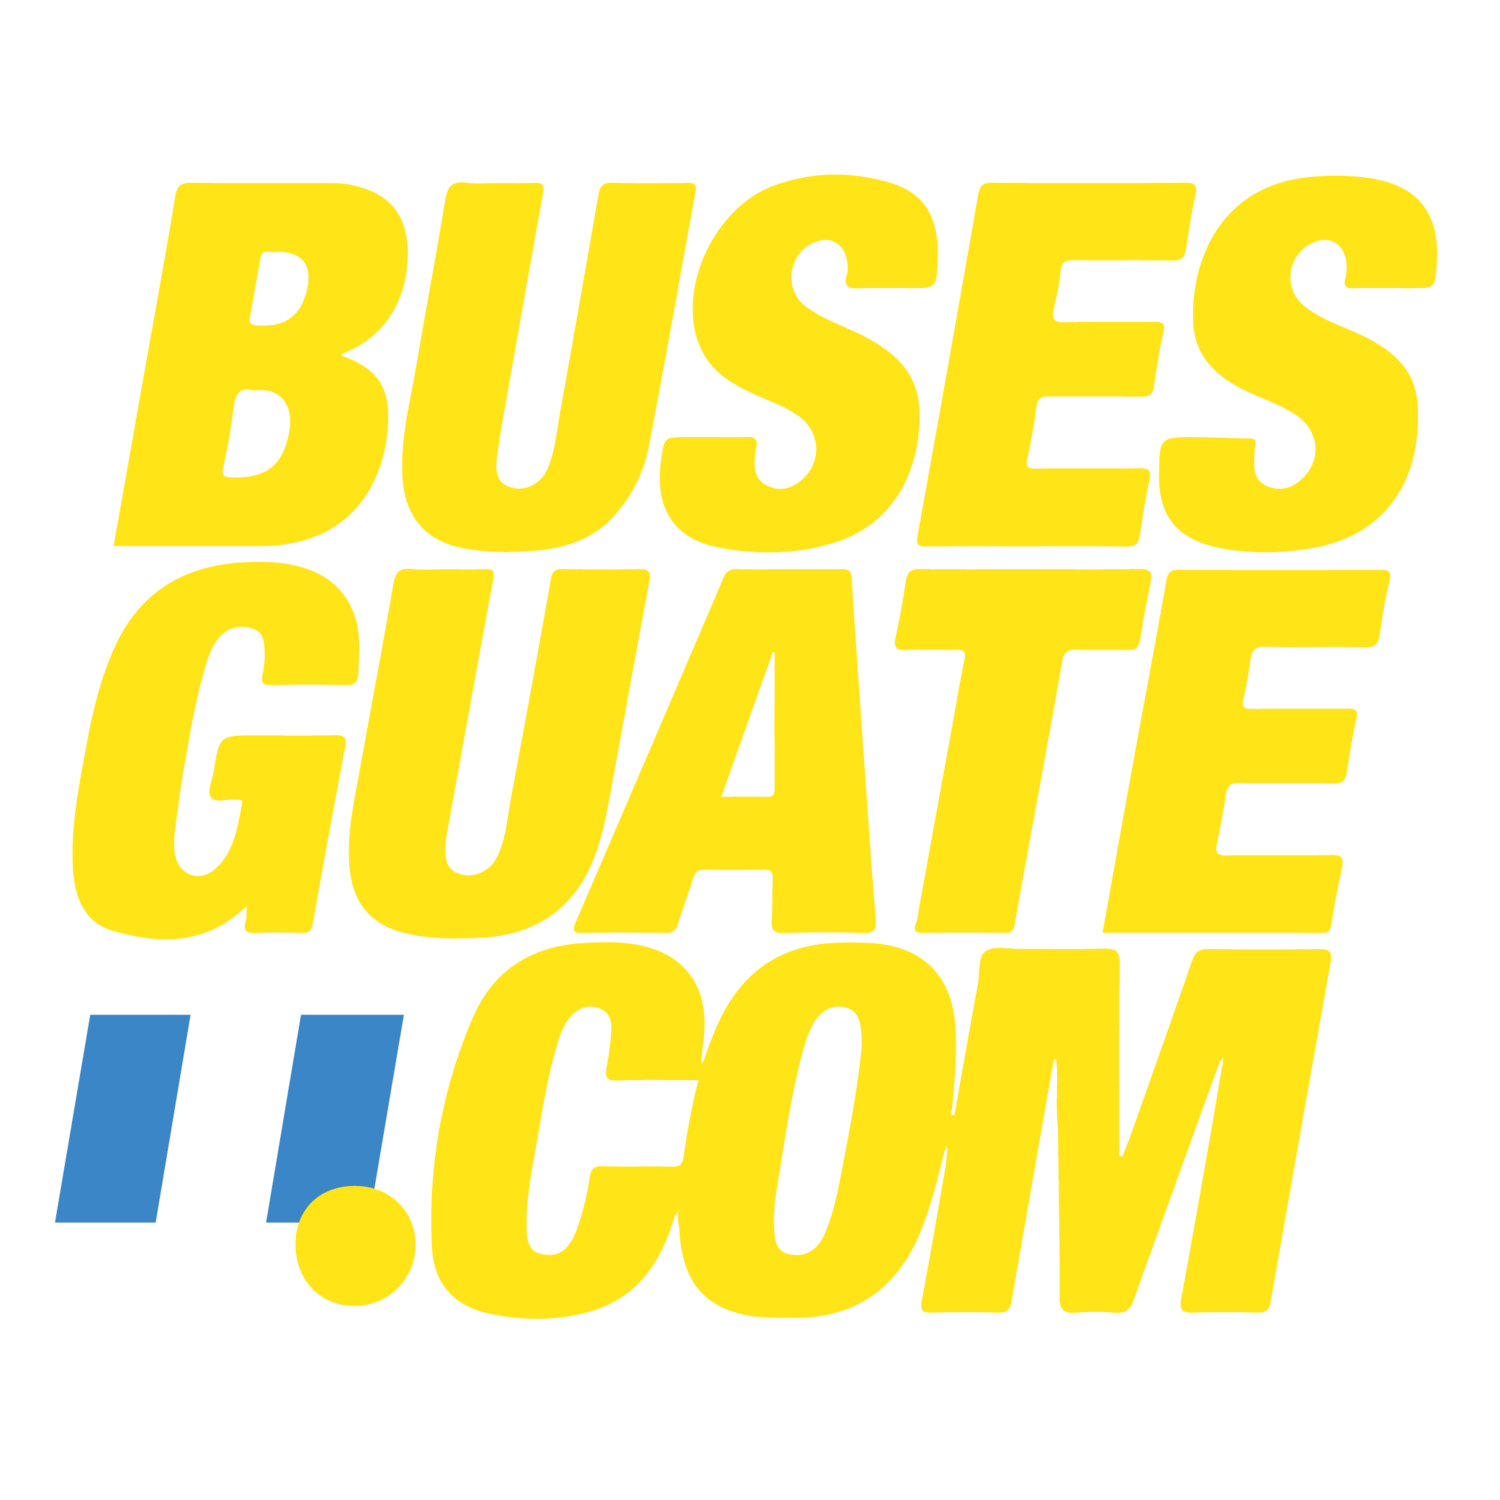 Buses Guate